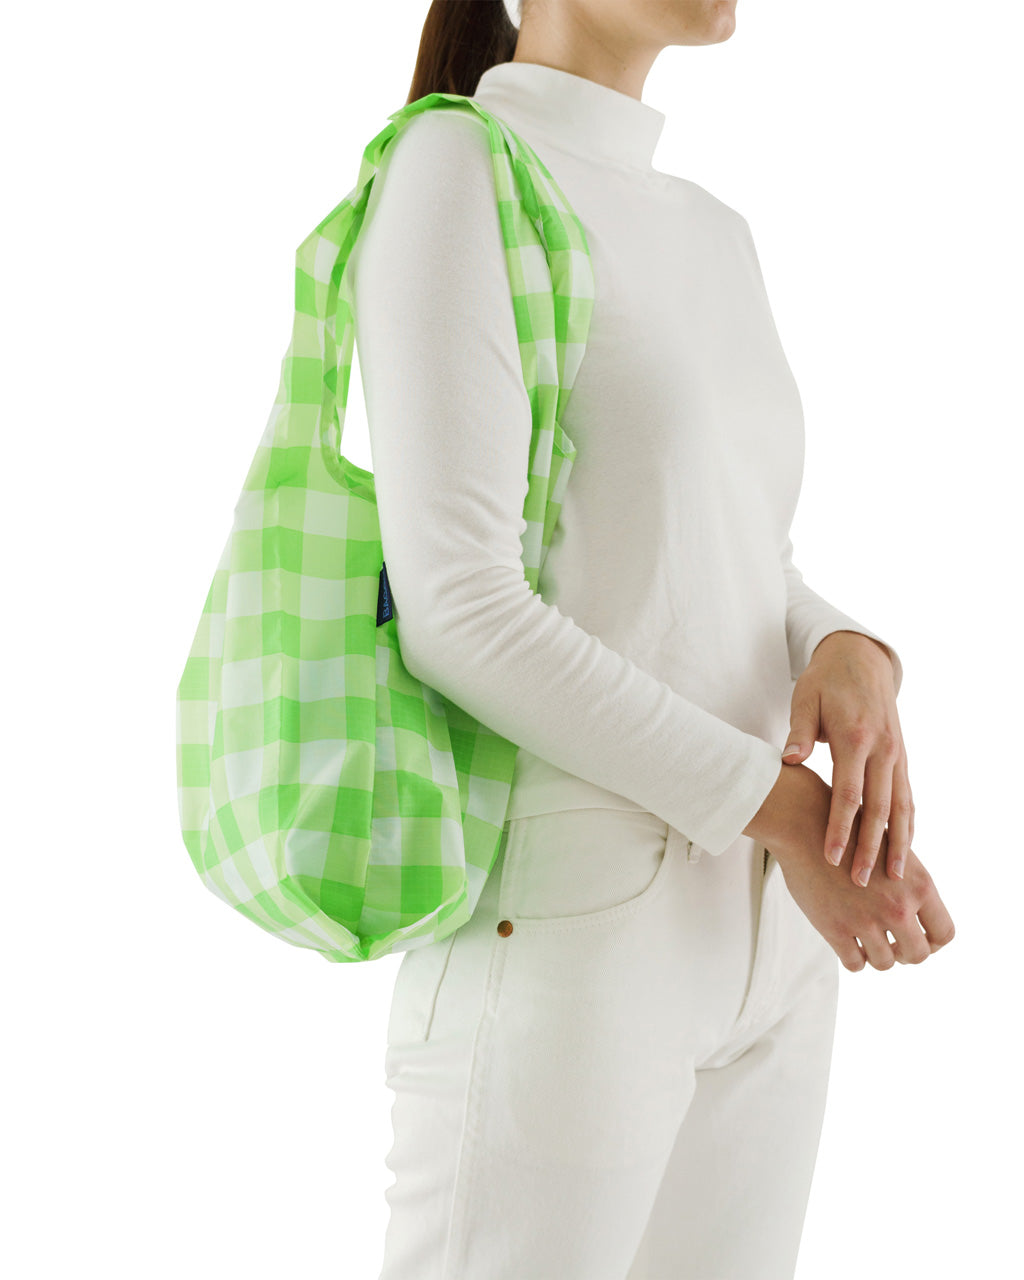 This Standard Baggu comes in a lime green checkerboard pattern.